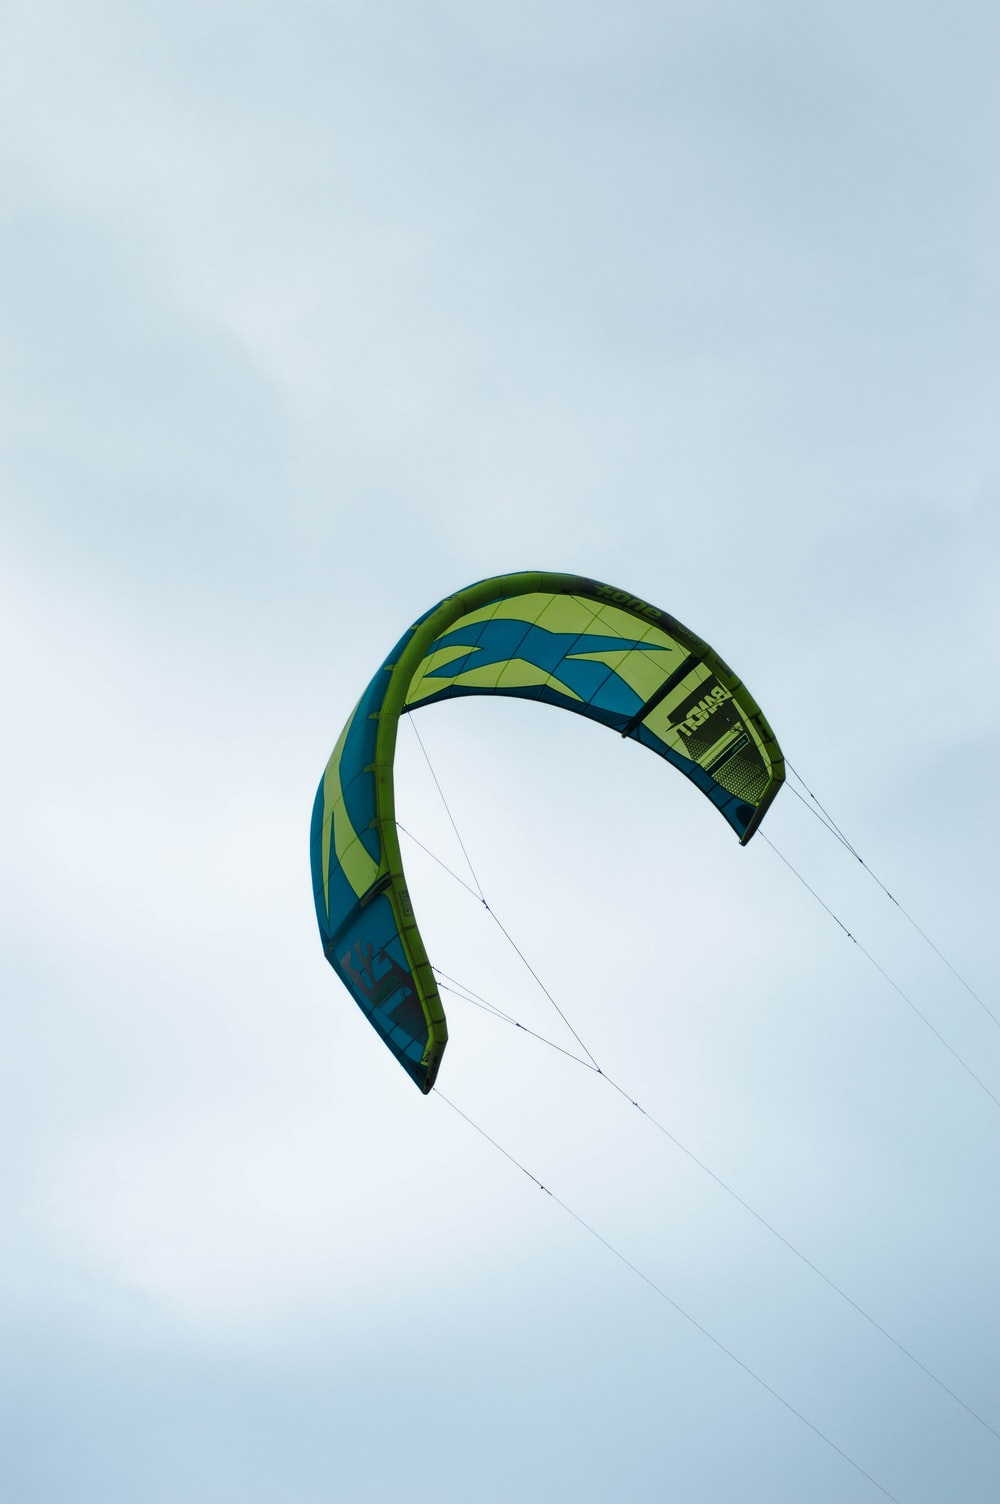 blue green and yellow parachute